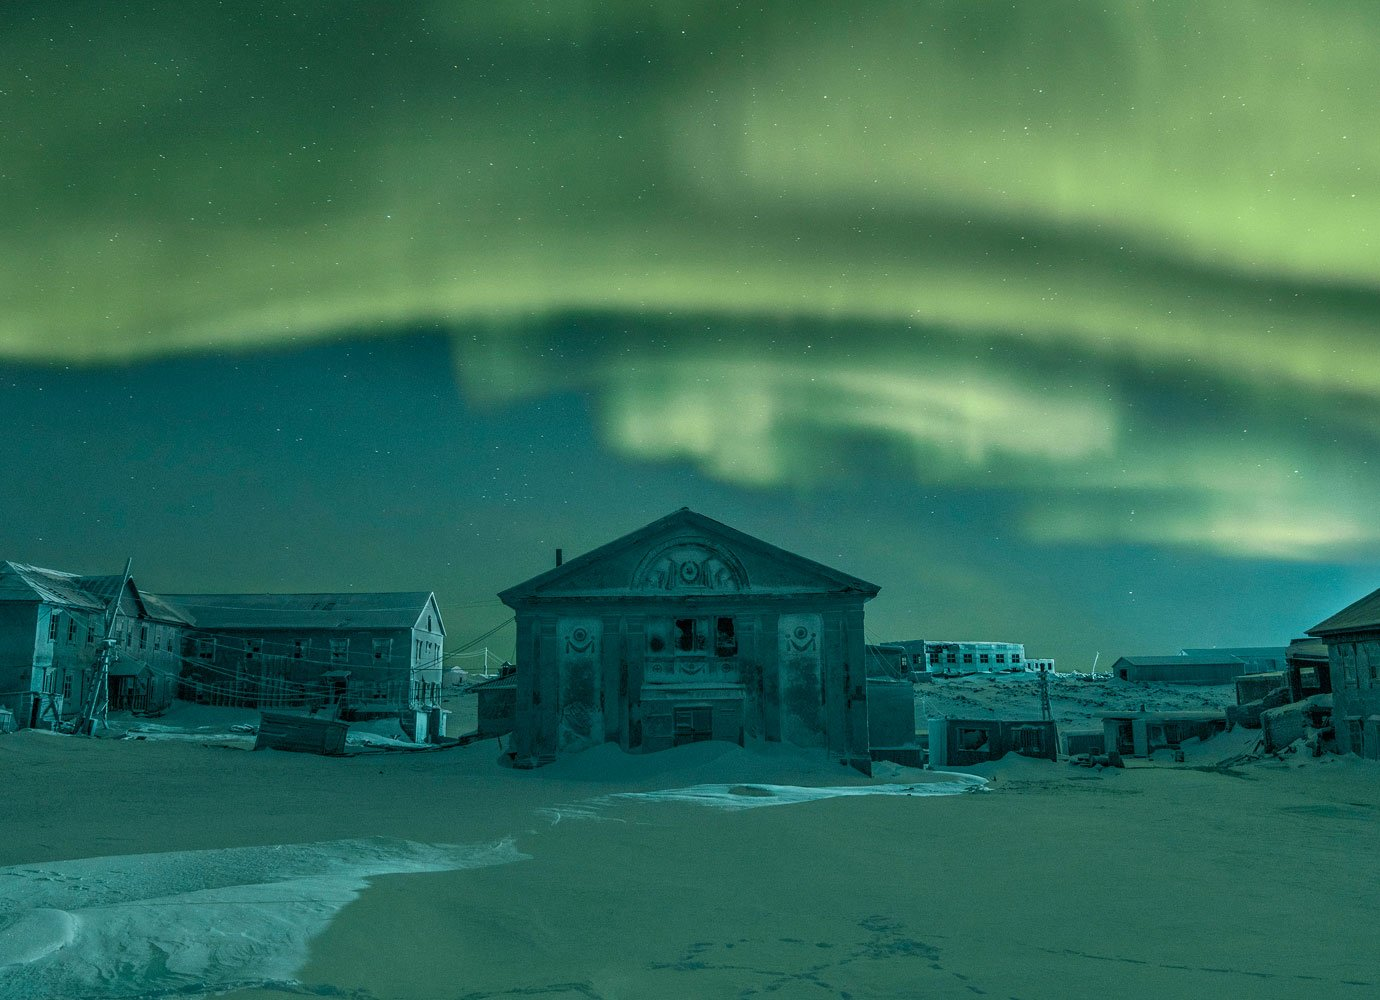 Behind photographer Evgenia Arbugaeva's dreamlike vision of the Russian Arctic